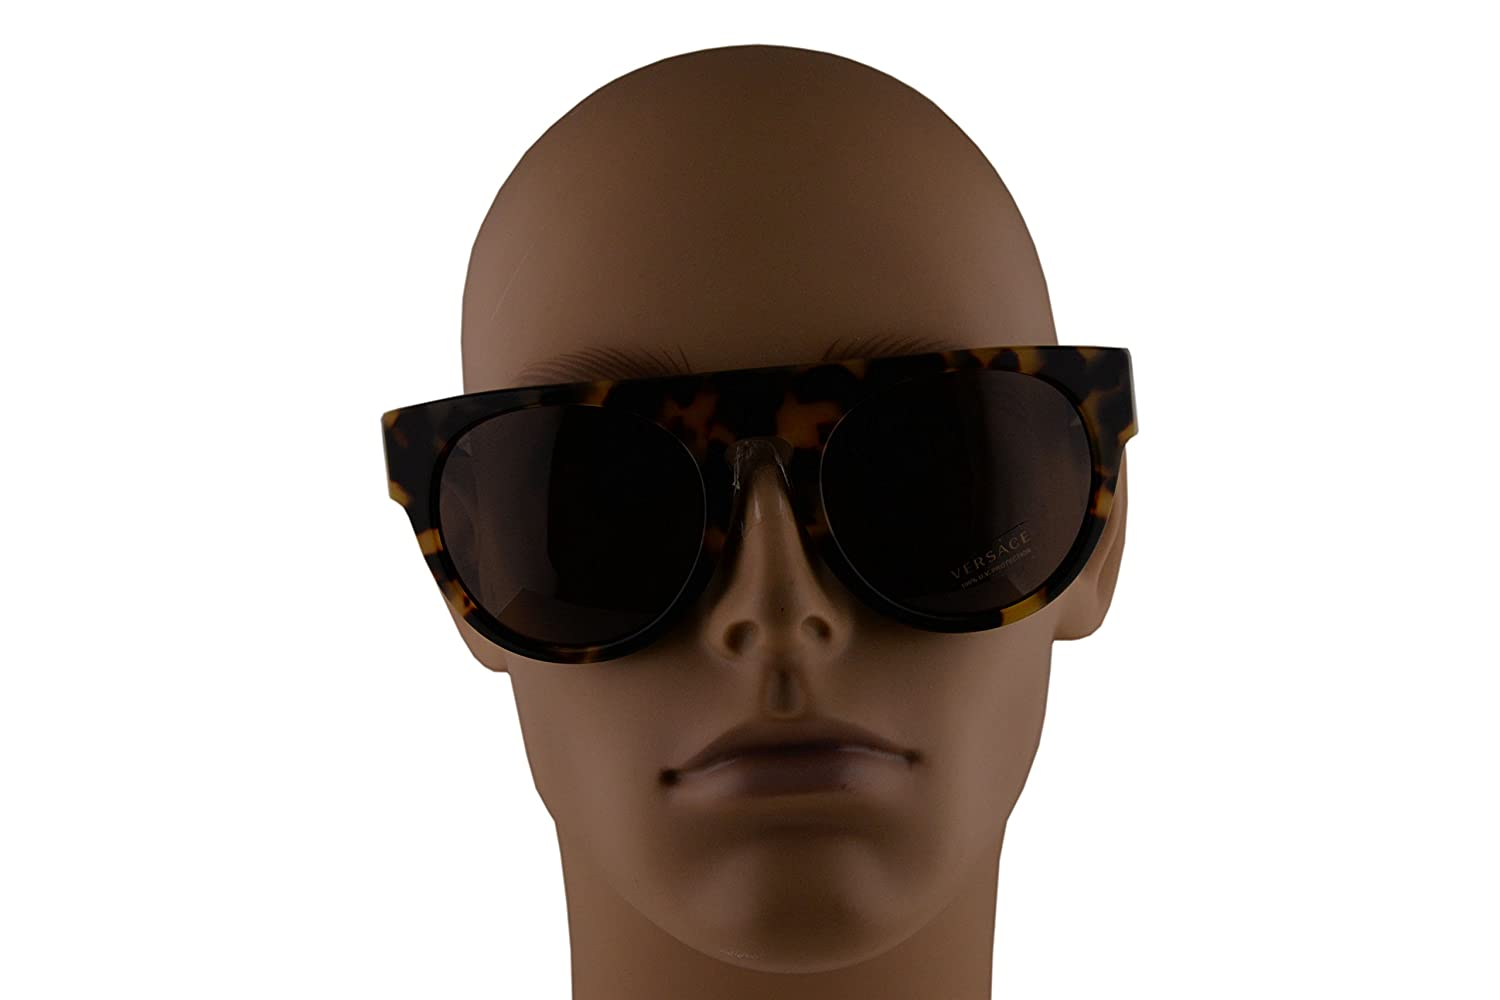 864da7614c3 Amazon.com  Versace VE4333 Sunglasses Havana White Black w Brown Lens  523173 VE 4333  Sports   Outdoors